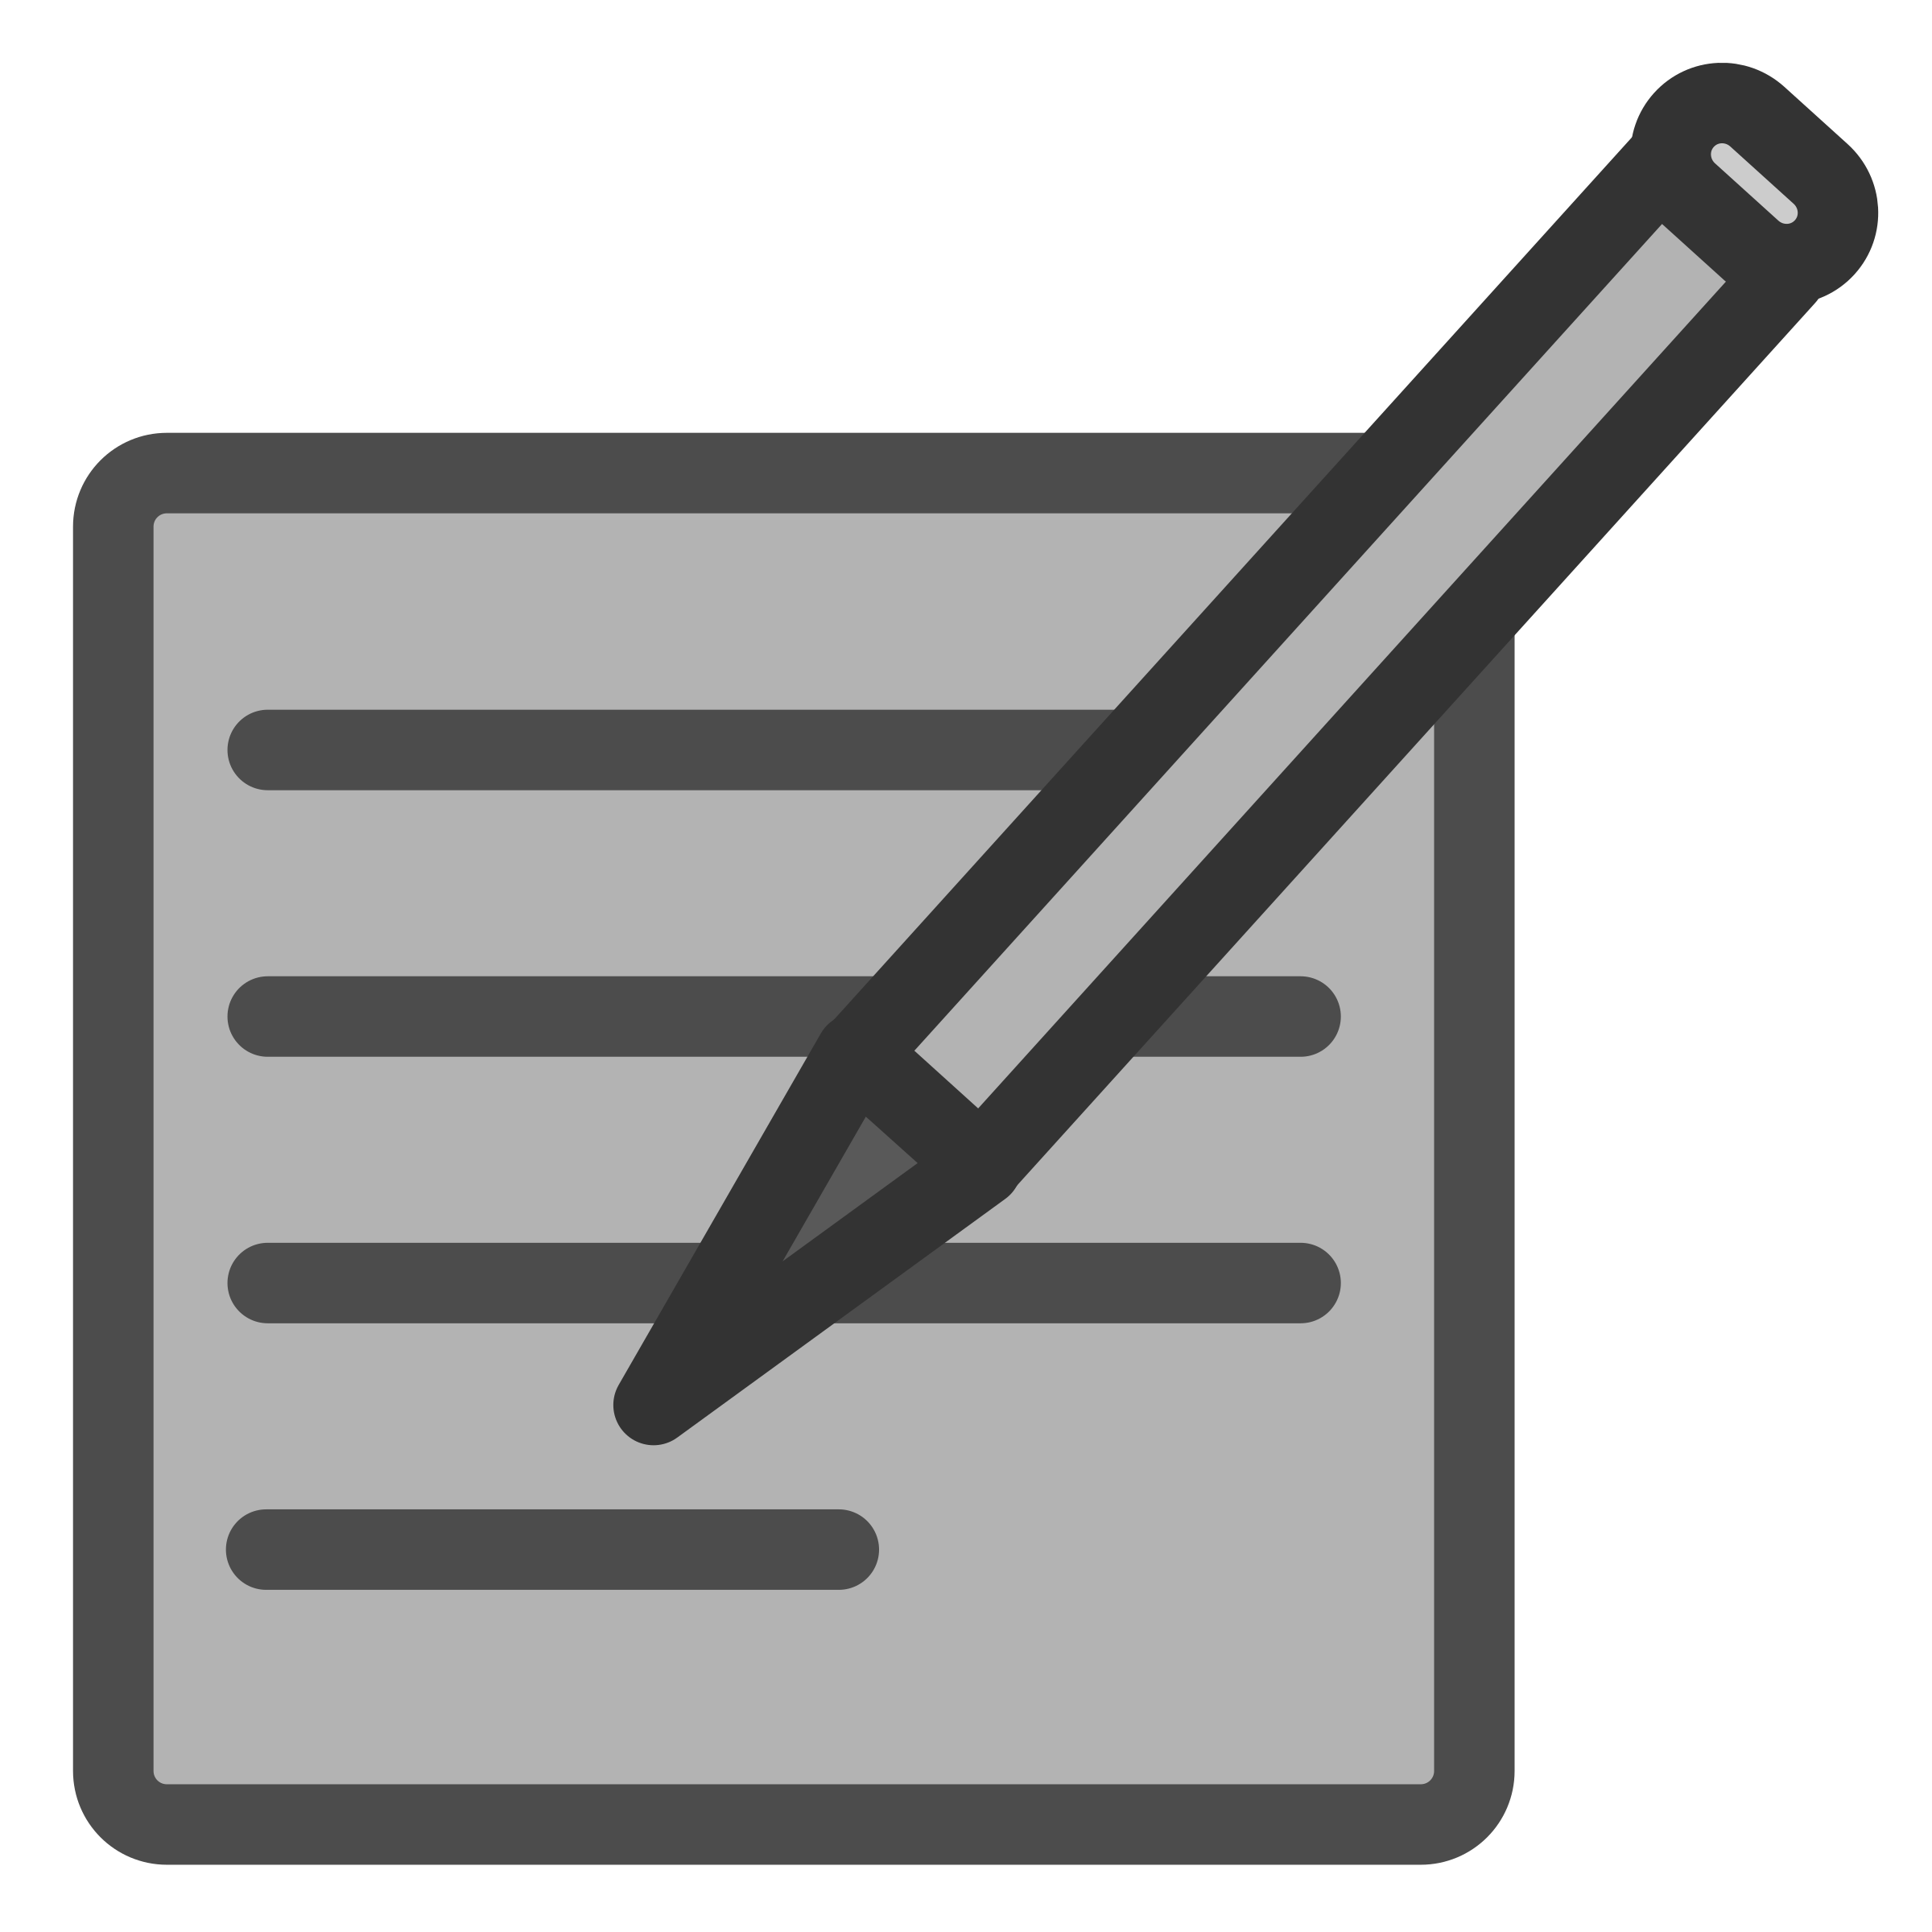 Write Document Icon by dannya